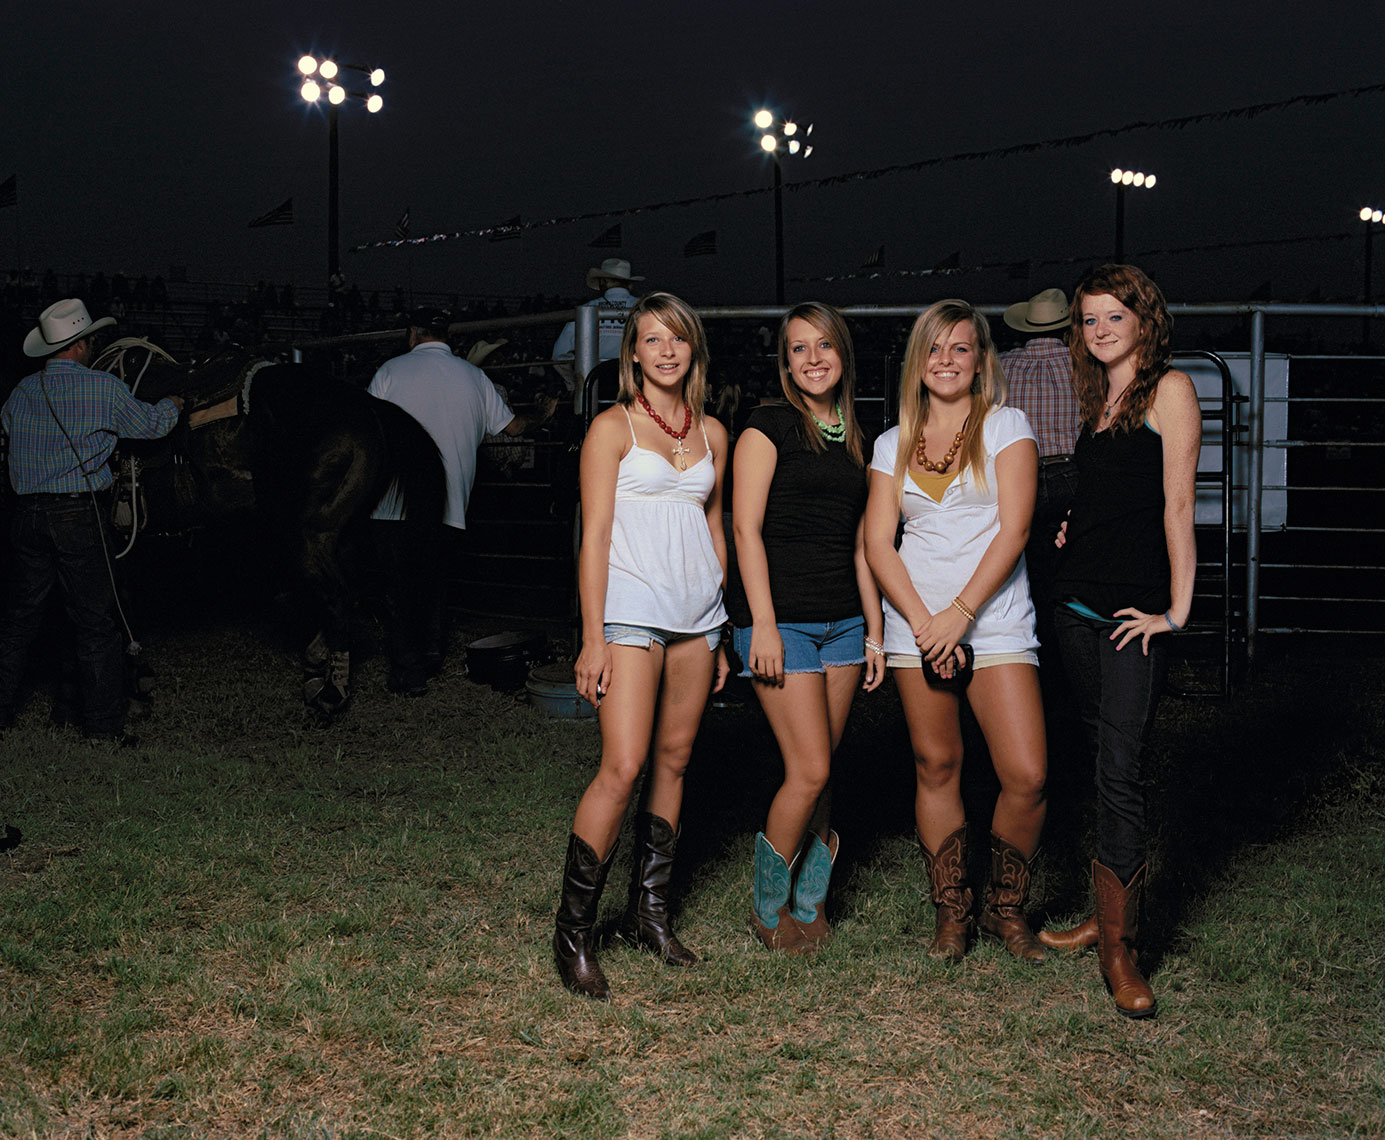 RodeoGirls_12x15-copy